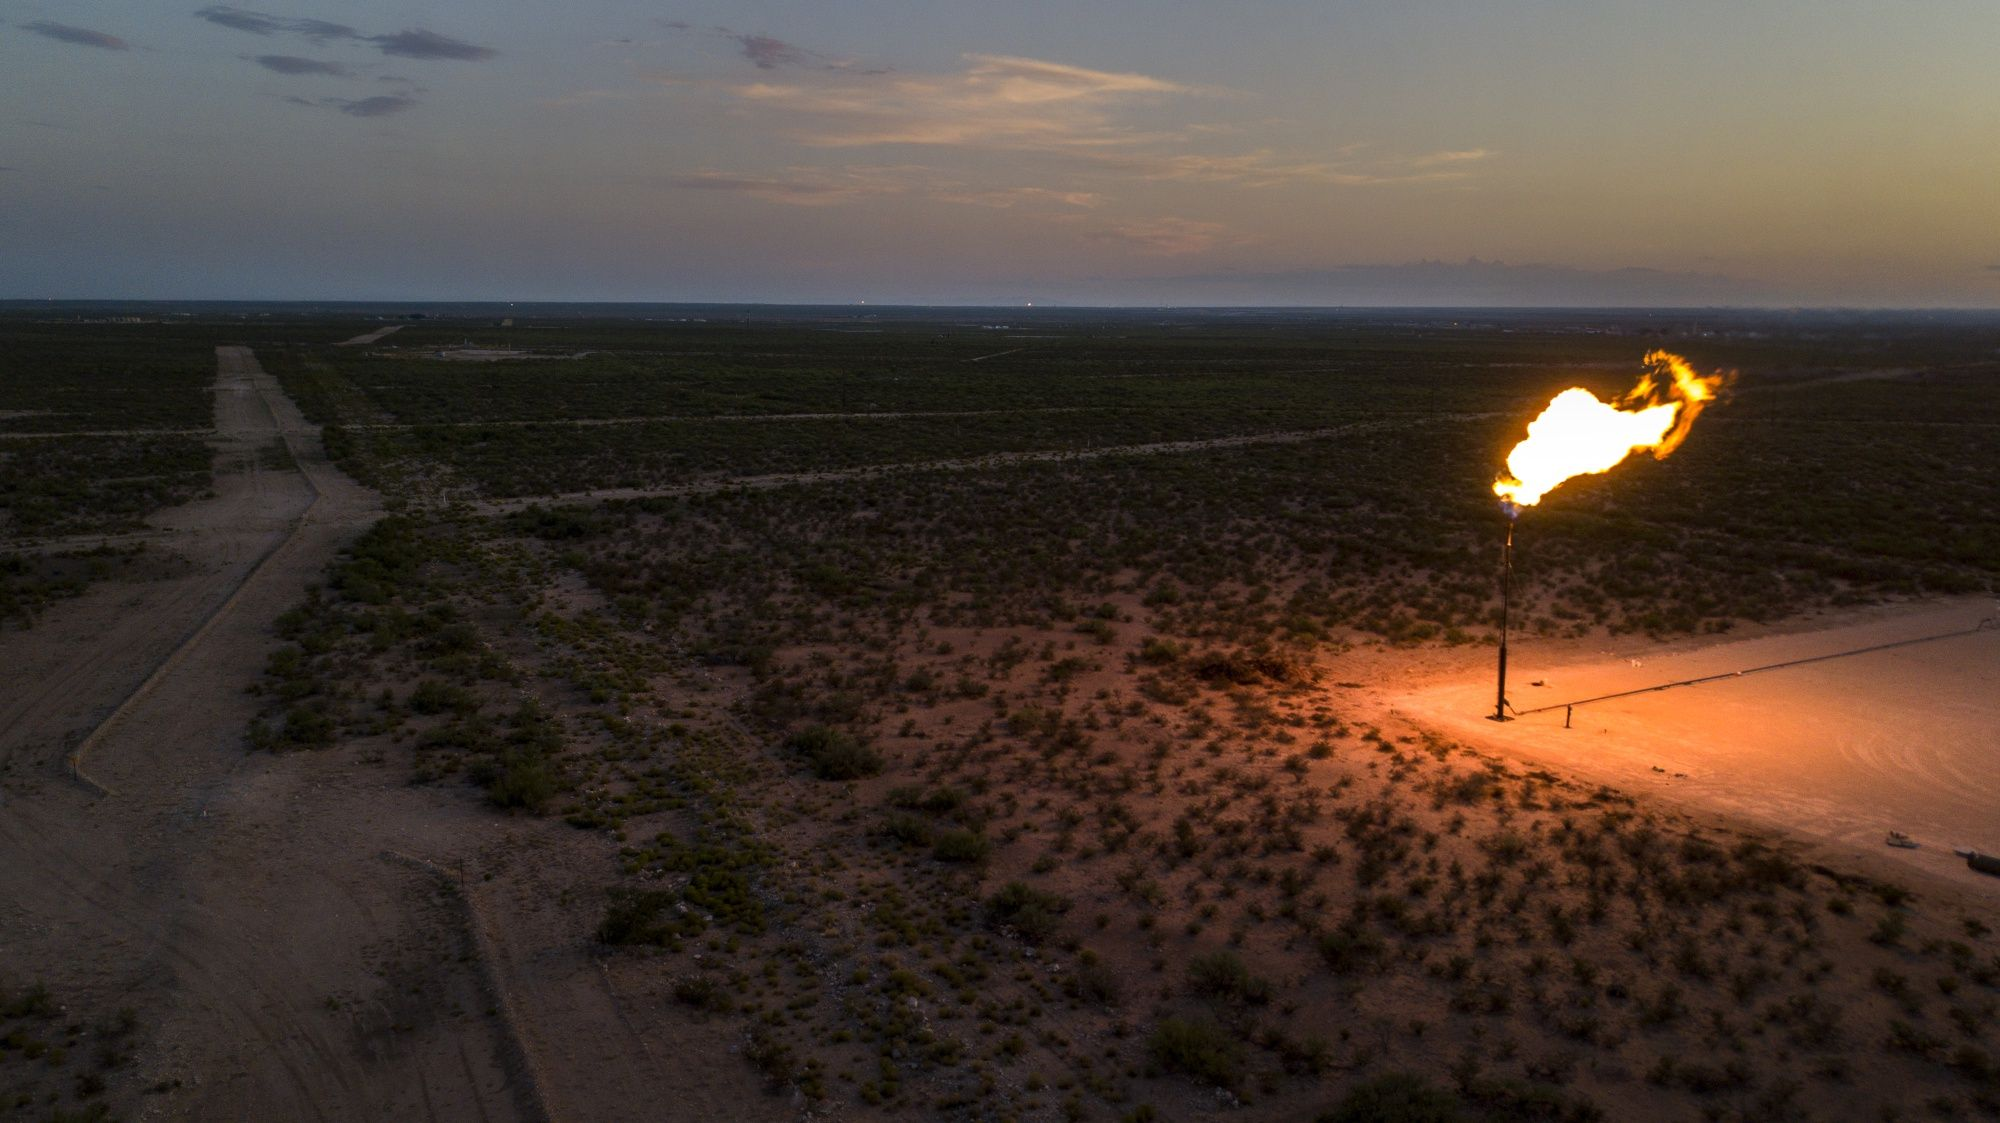 World 'Awash' in Oil as U.S. Sees Its Shale Boom Barreling Ahead